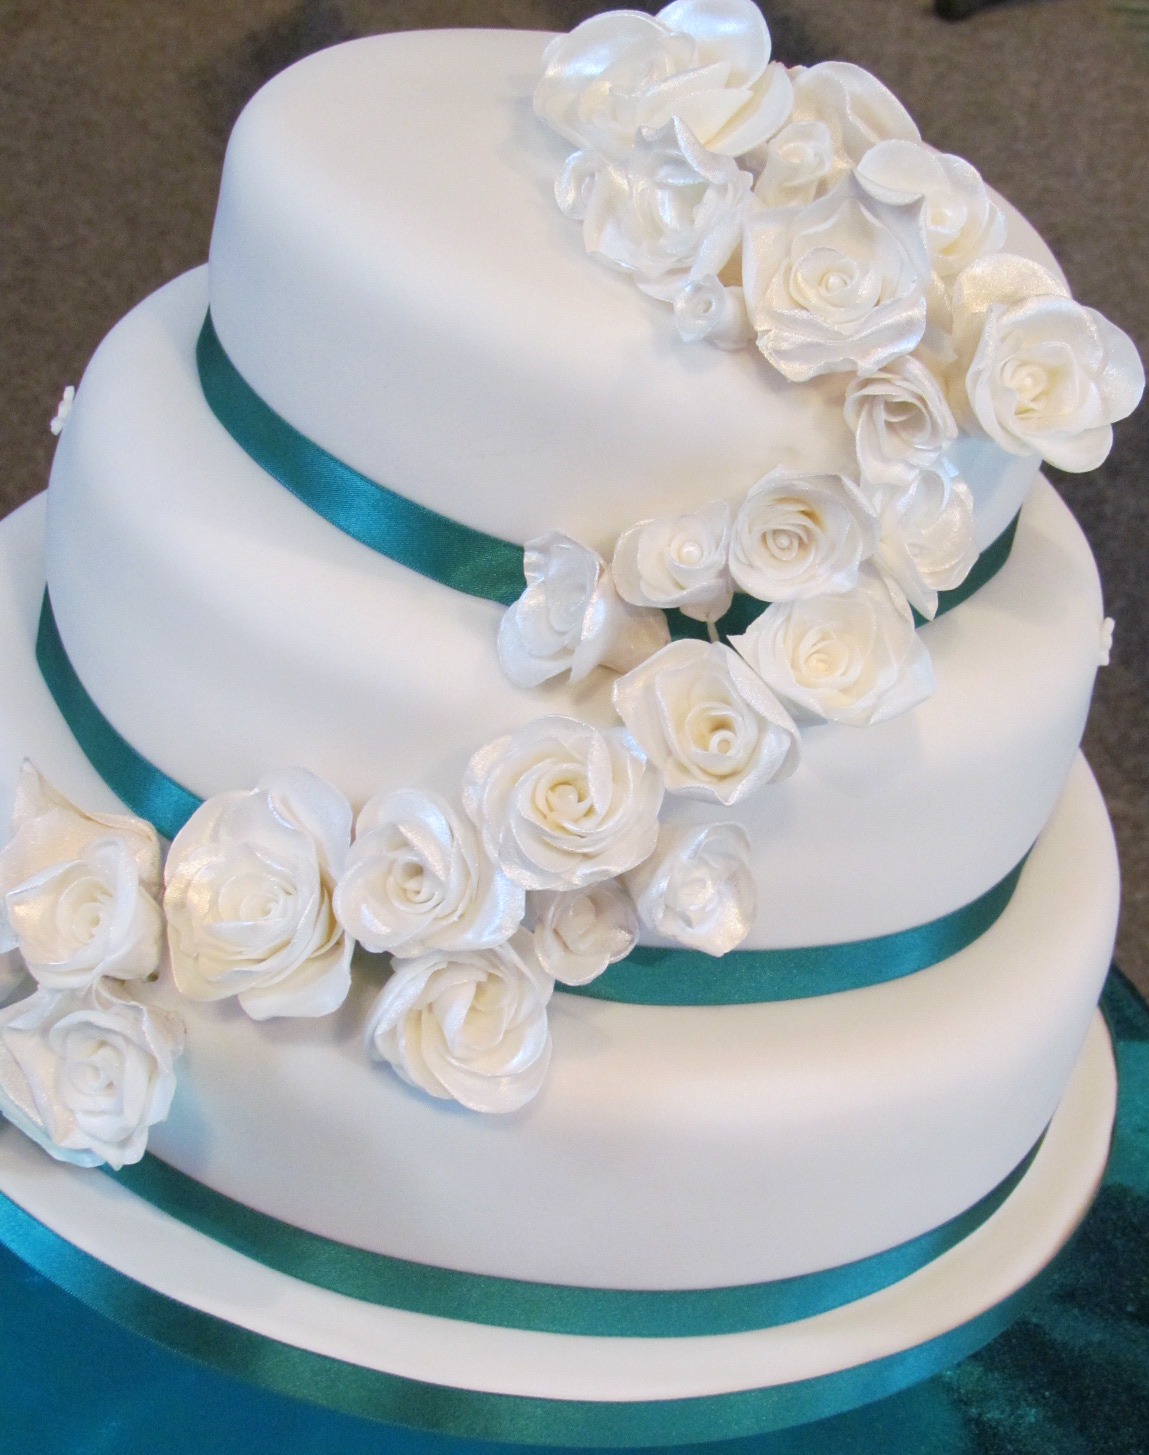 Baked Beauties - Page 7 of 10 - Specialist cakes for all occasions